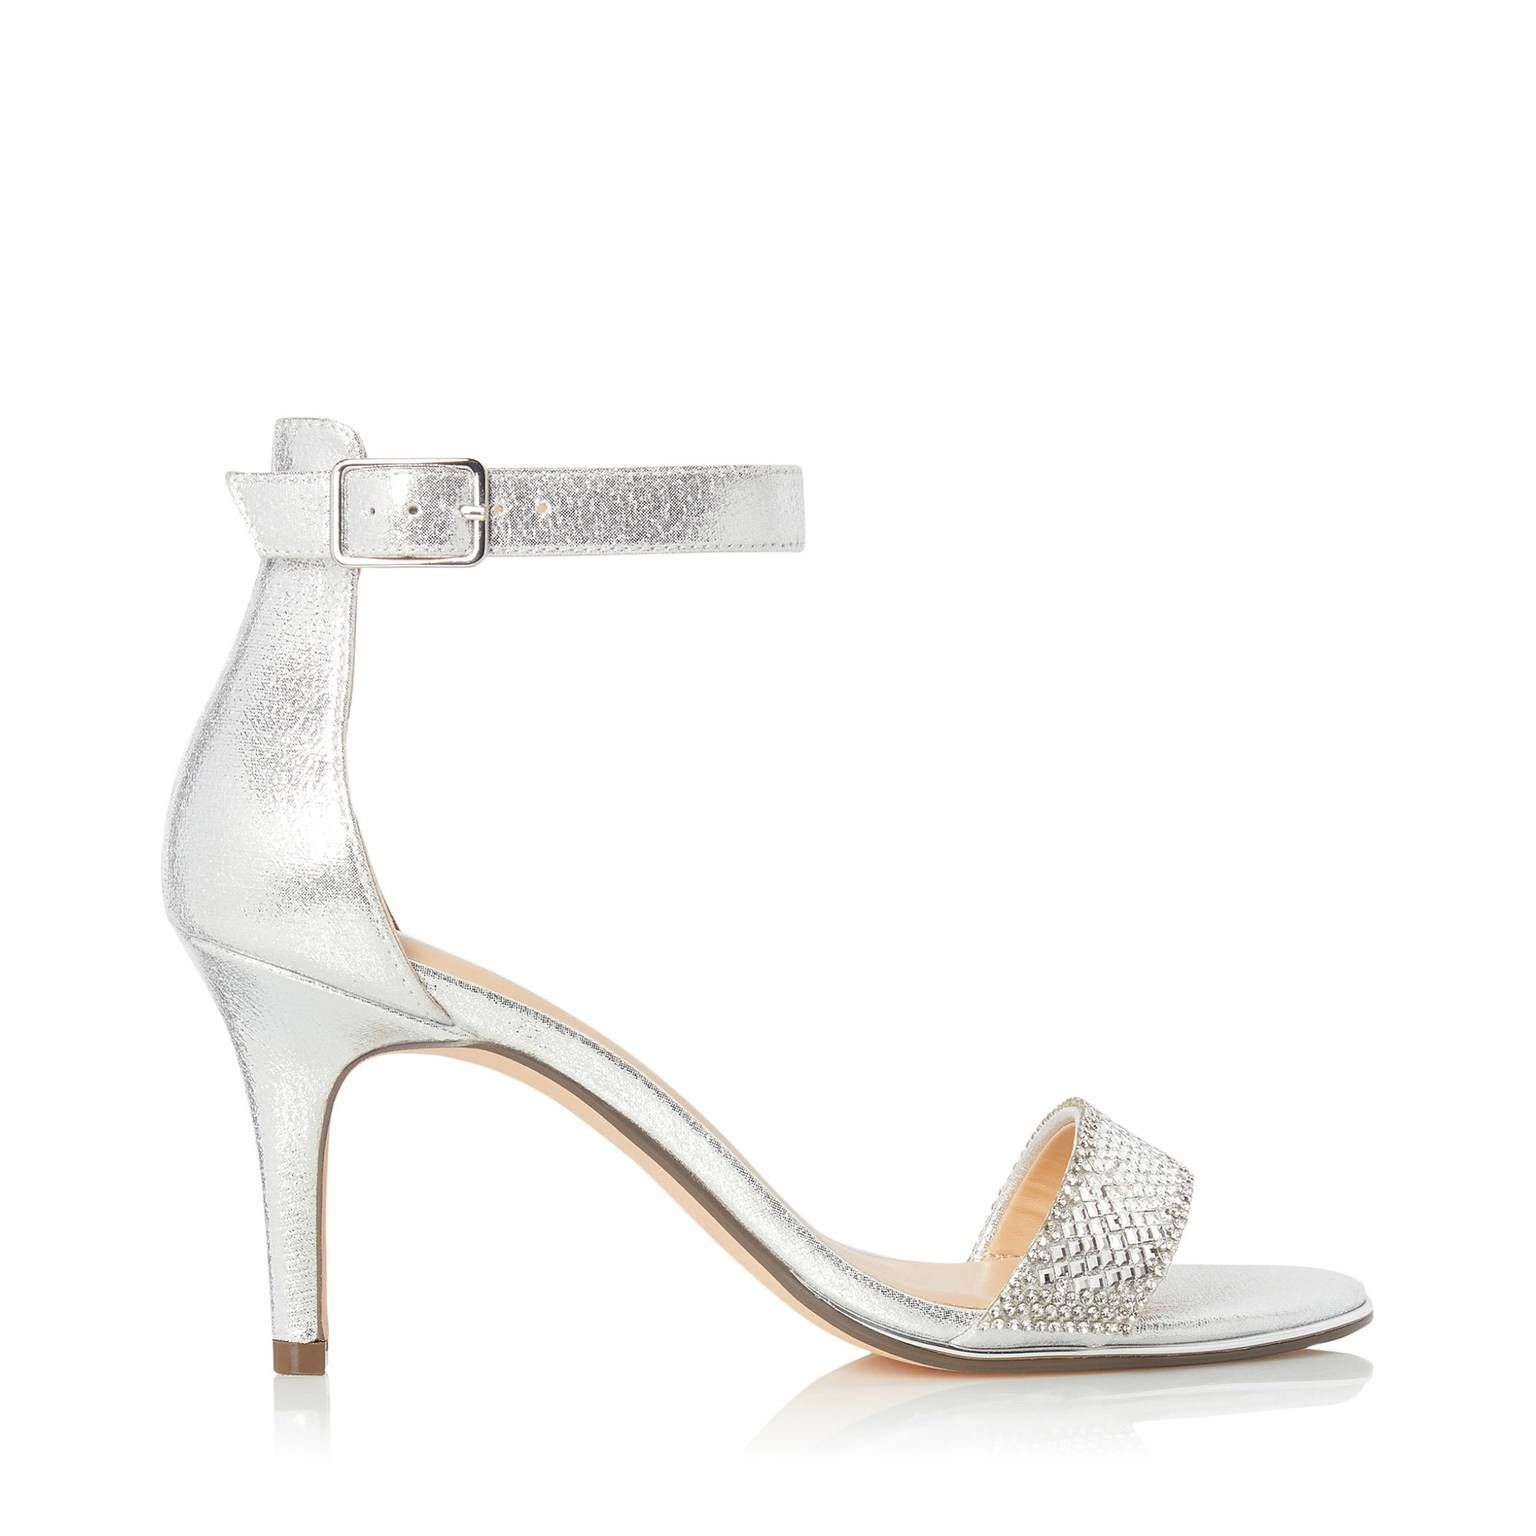 The best comfortable wedding shoes: For